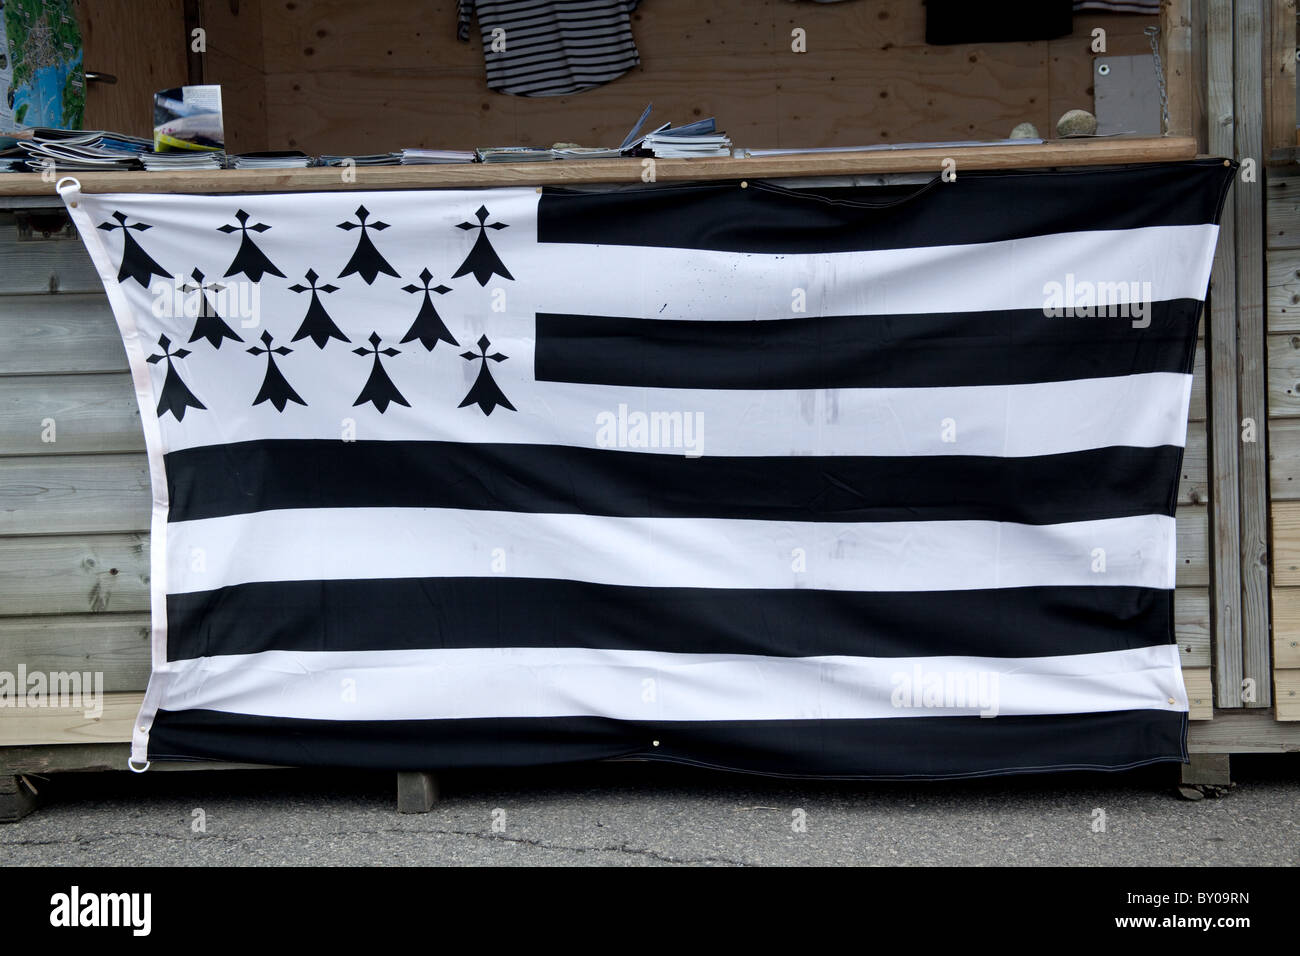 the national flag of Brittany stapled to a booth in the Port of Brest Brittany France - Stock Image